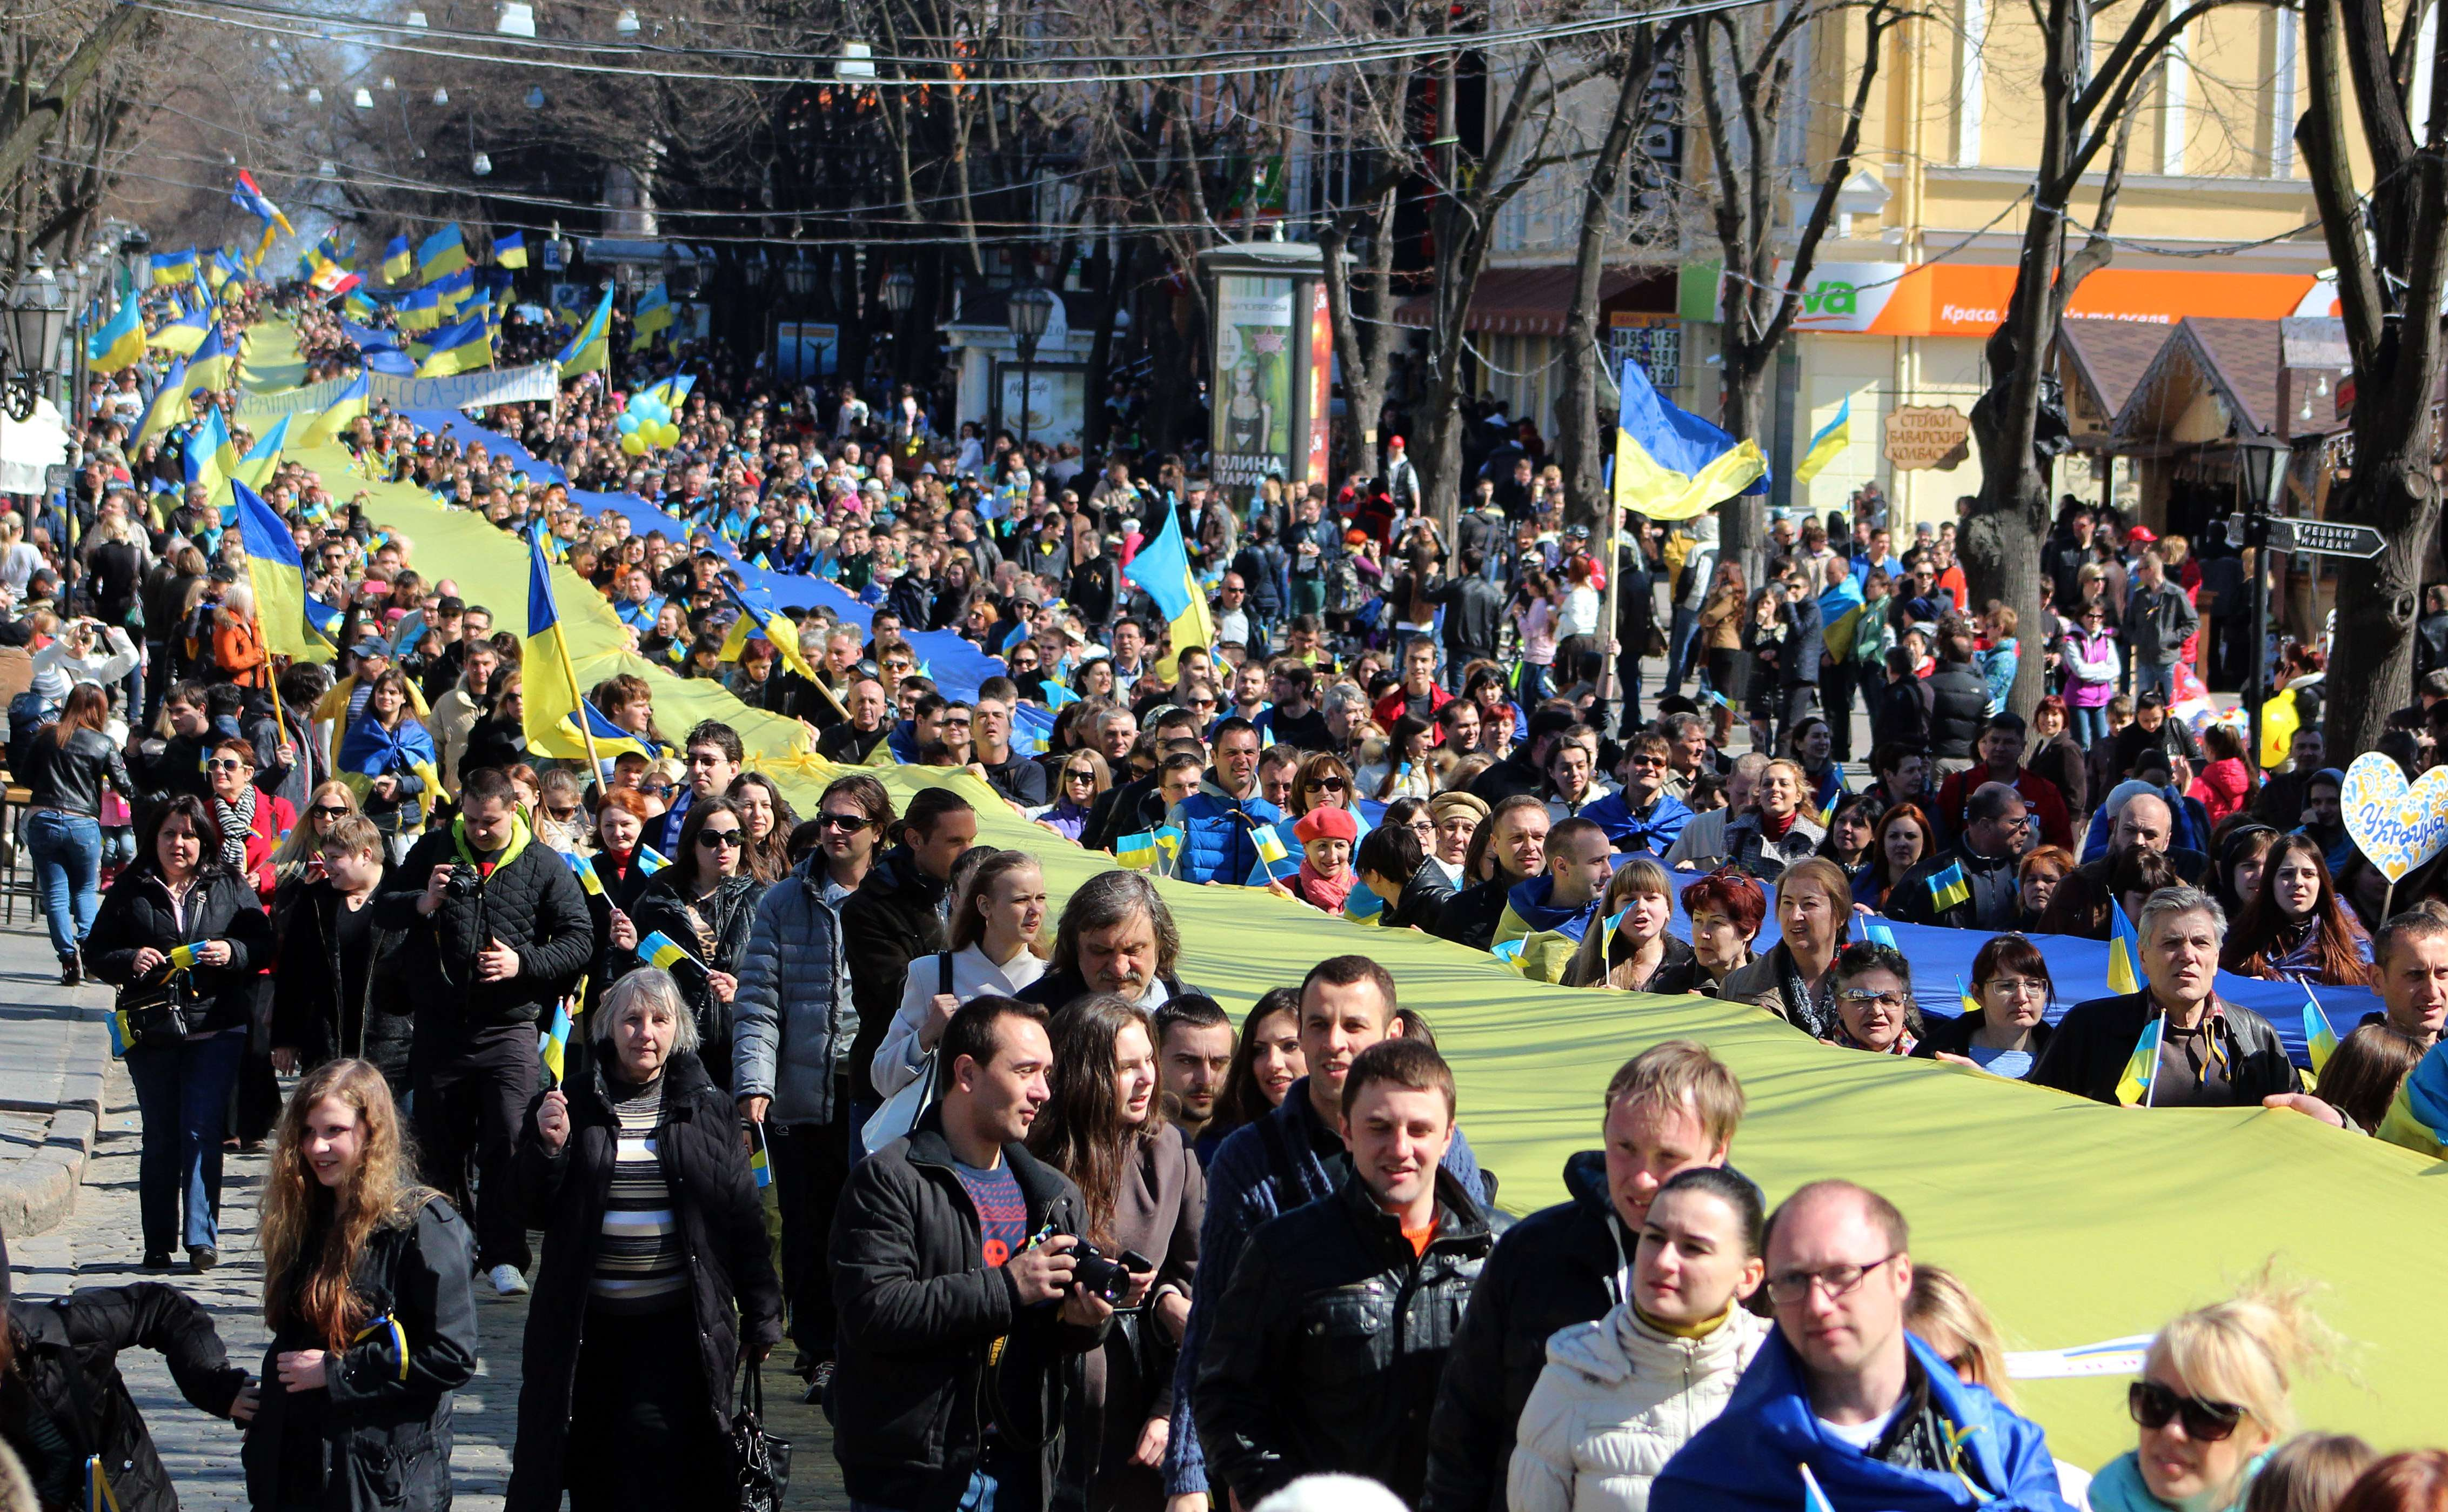 Pro-European Maidan supporters hold a large Ukrainian flag during a rally in Odessa on March 30, 2014. US Secretary of State John Kerry met his Russian counterpart today hoping to ease global tensions over the Kremlin's annexation of Crimea and sudden buildup of troops near Ukraine.  (AFP PHOTO / ALEXEY KRAVTSOV)